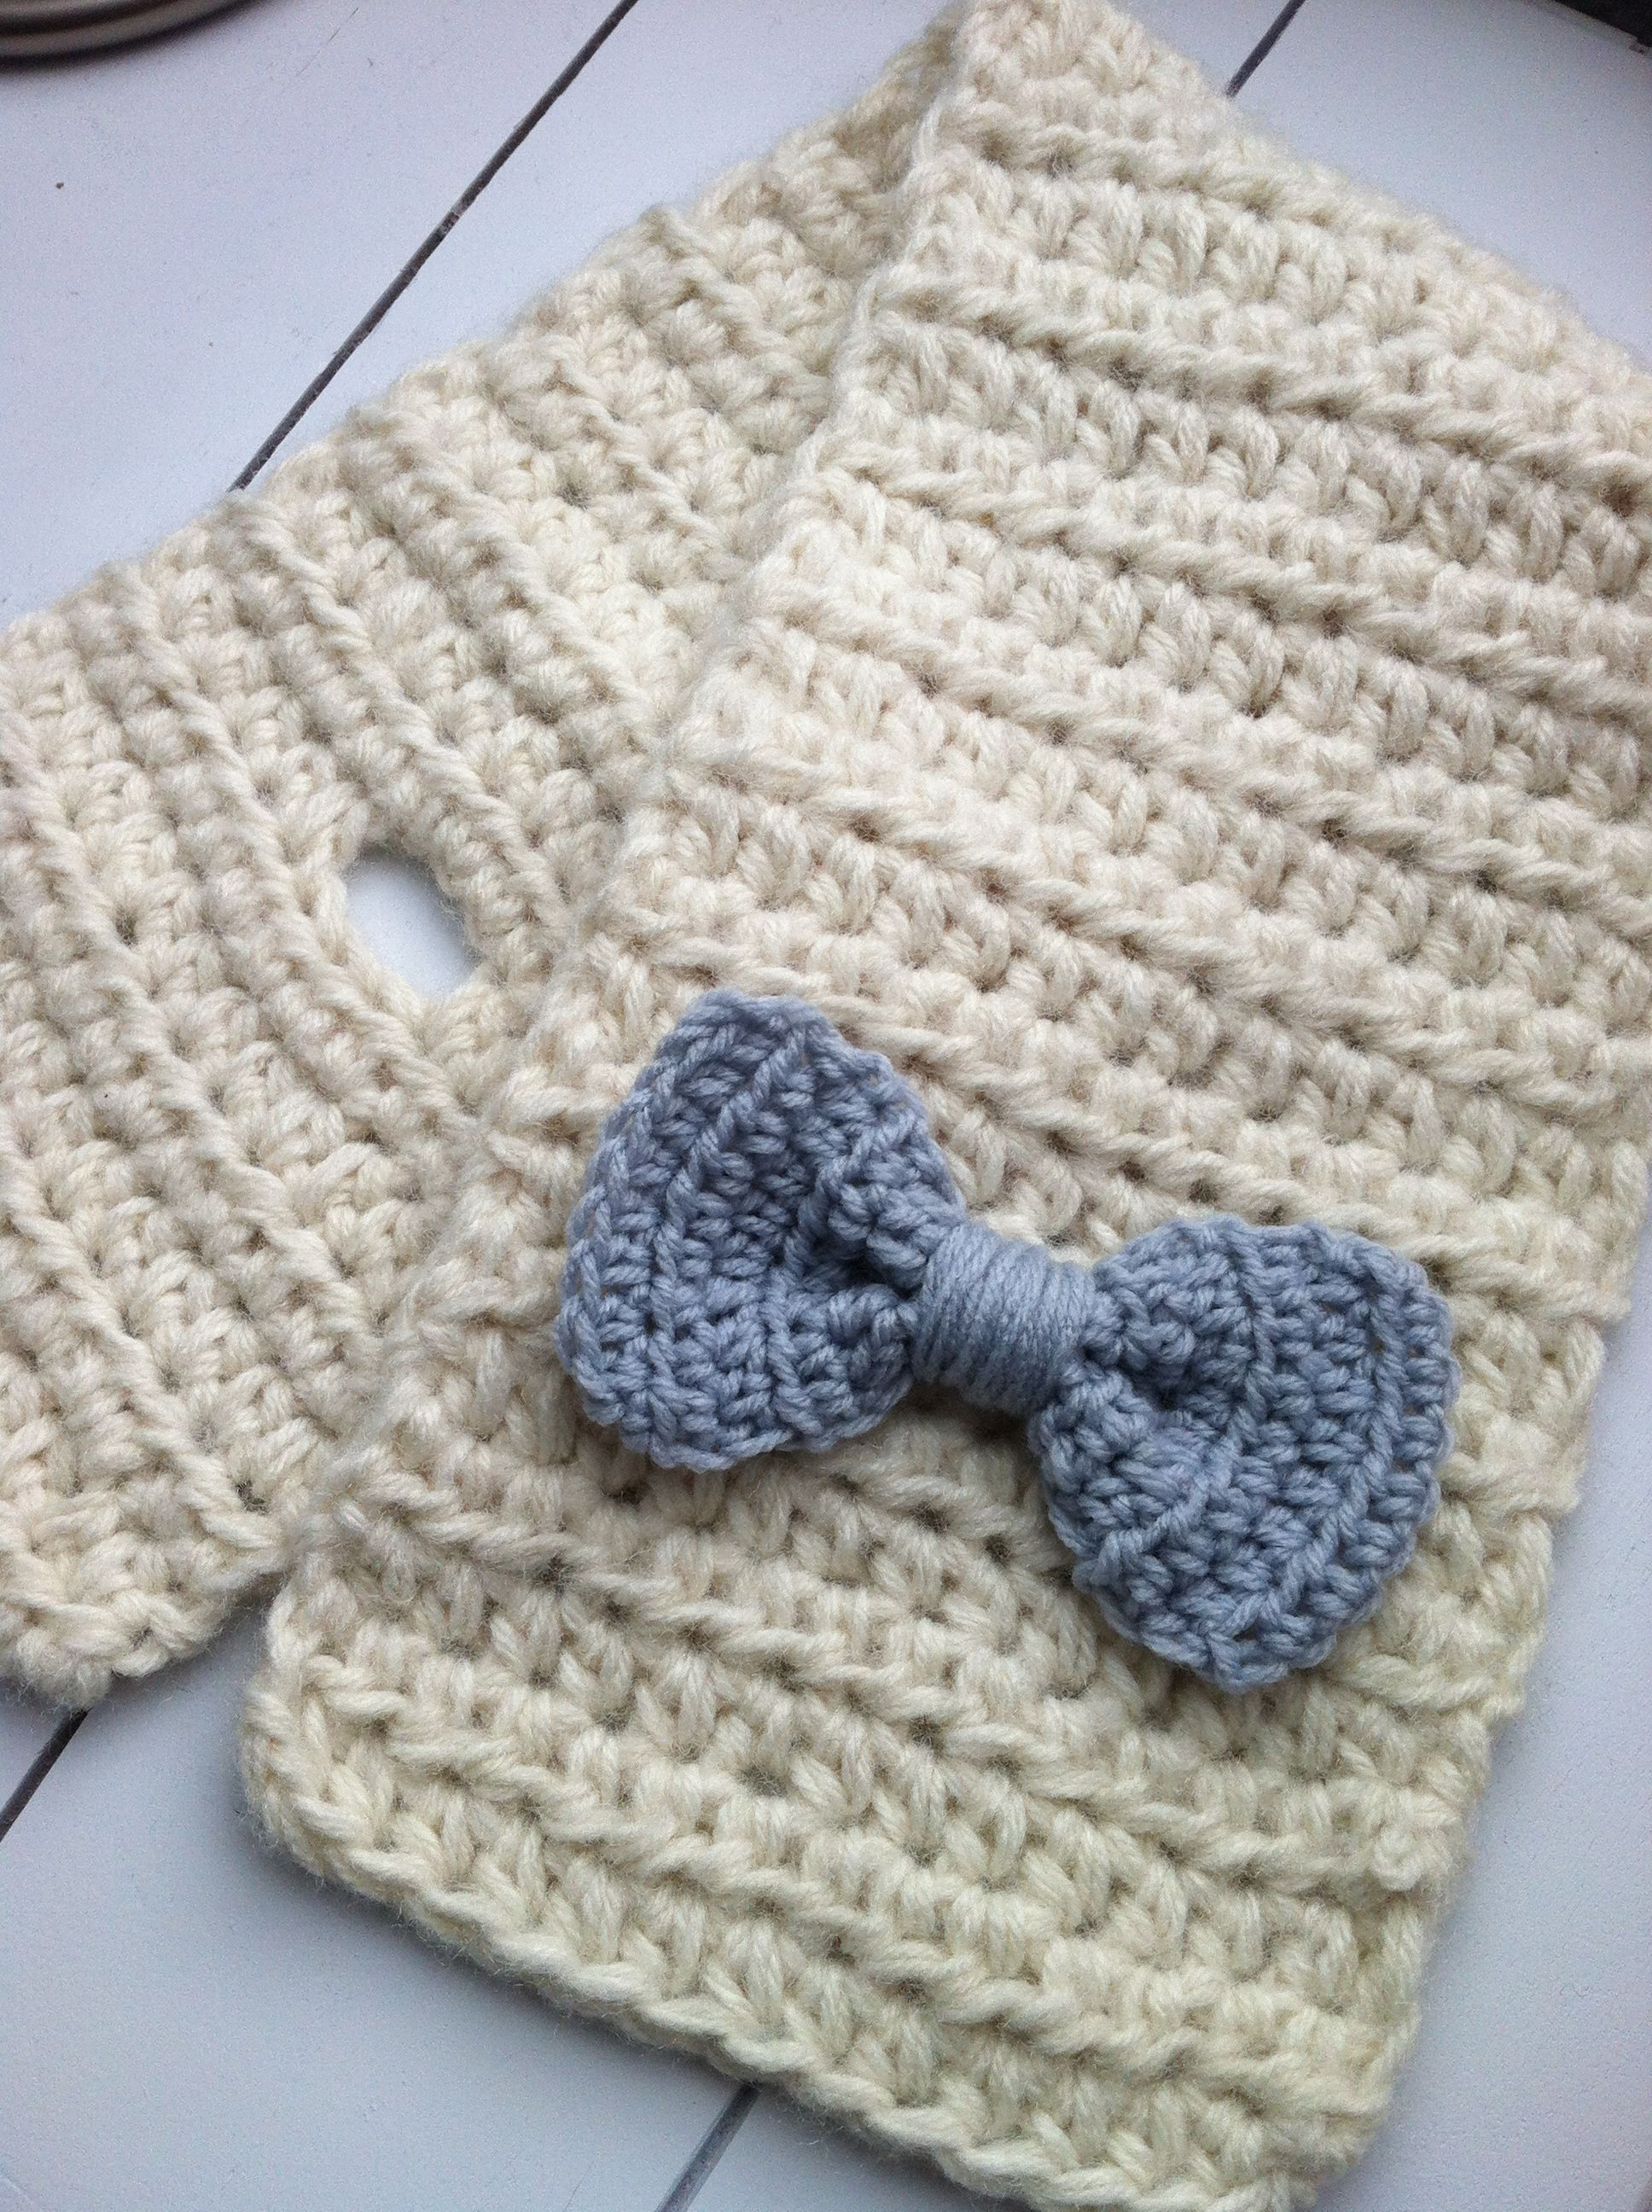 Crochet Toddler Bow Scarf Tutorial from PINspiration Knit